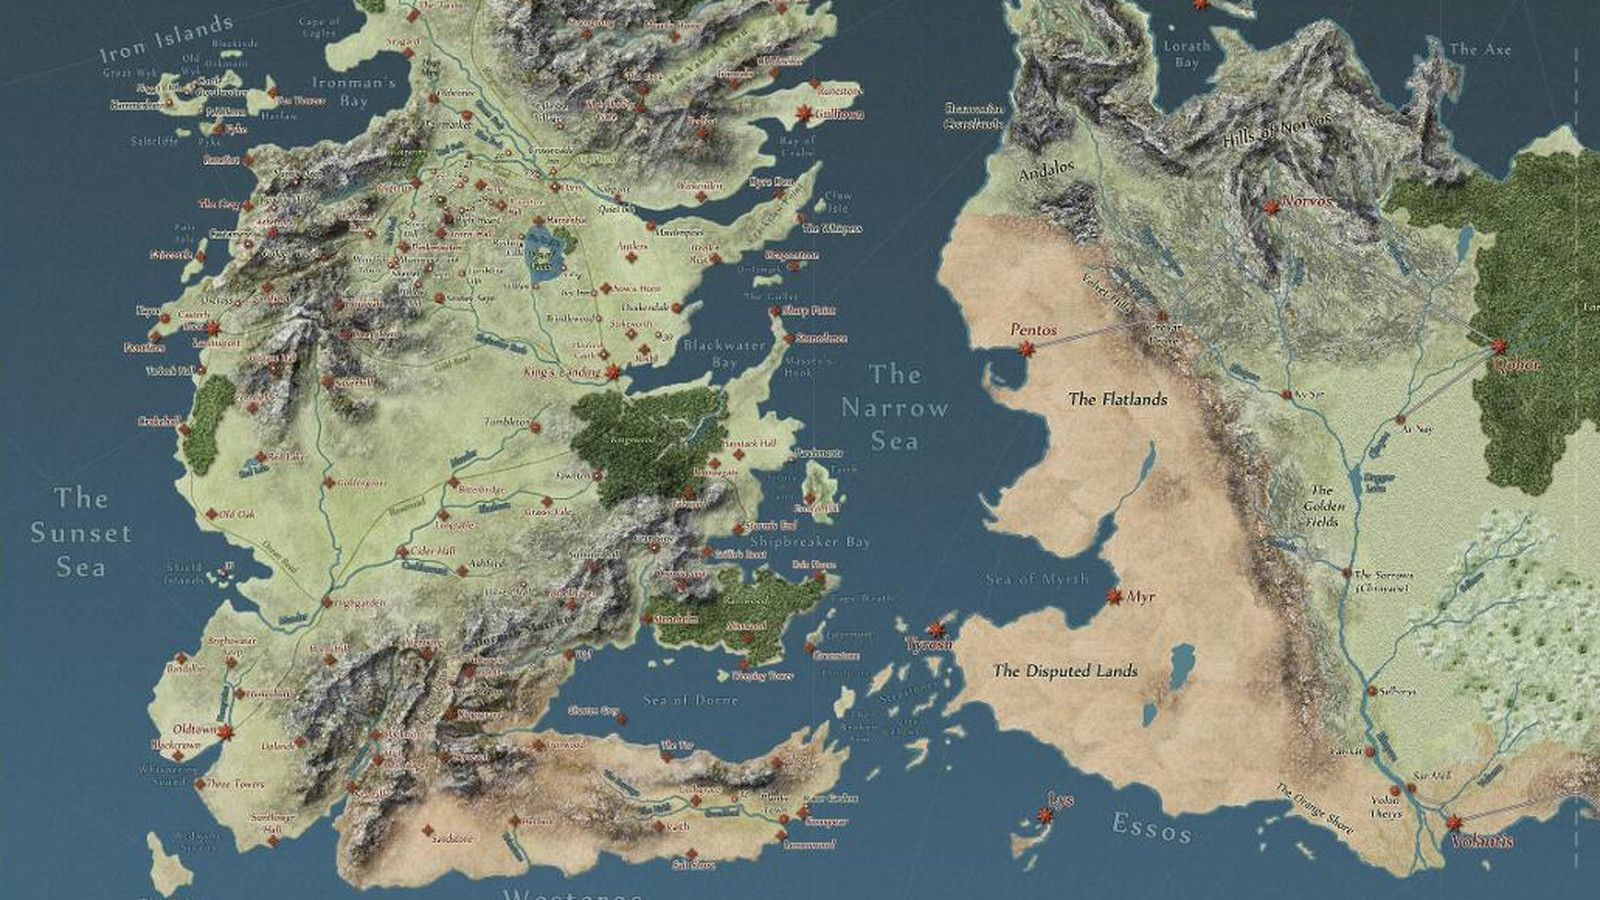 Game Of Thrones Map Desktop Wallpapers Top Free Game Of Thrones